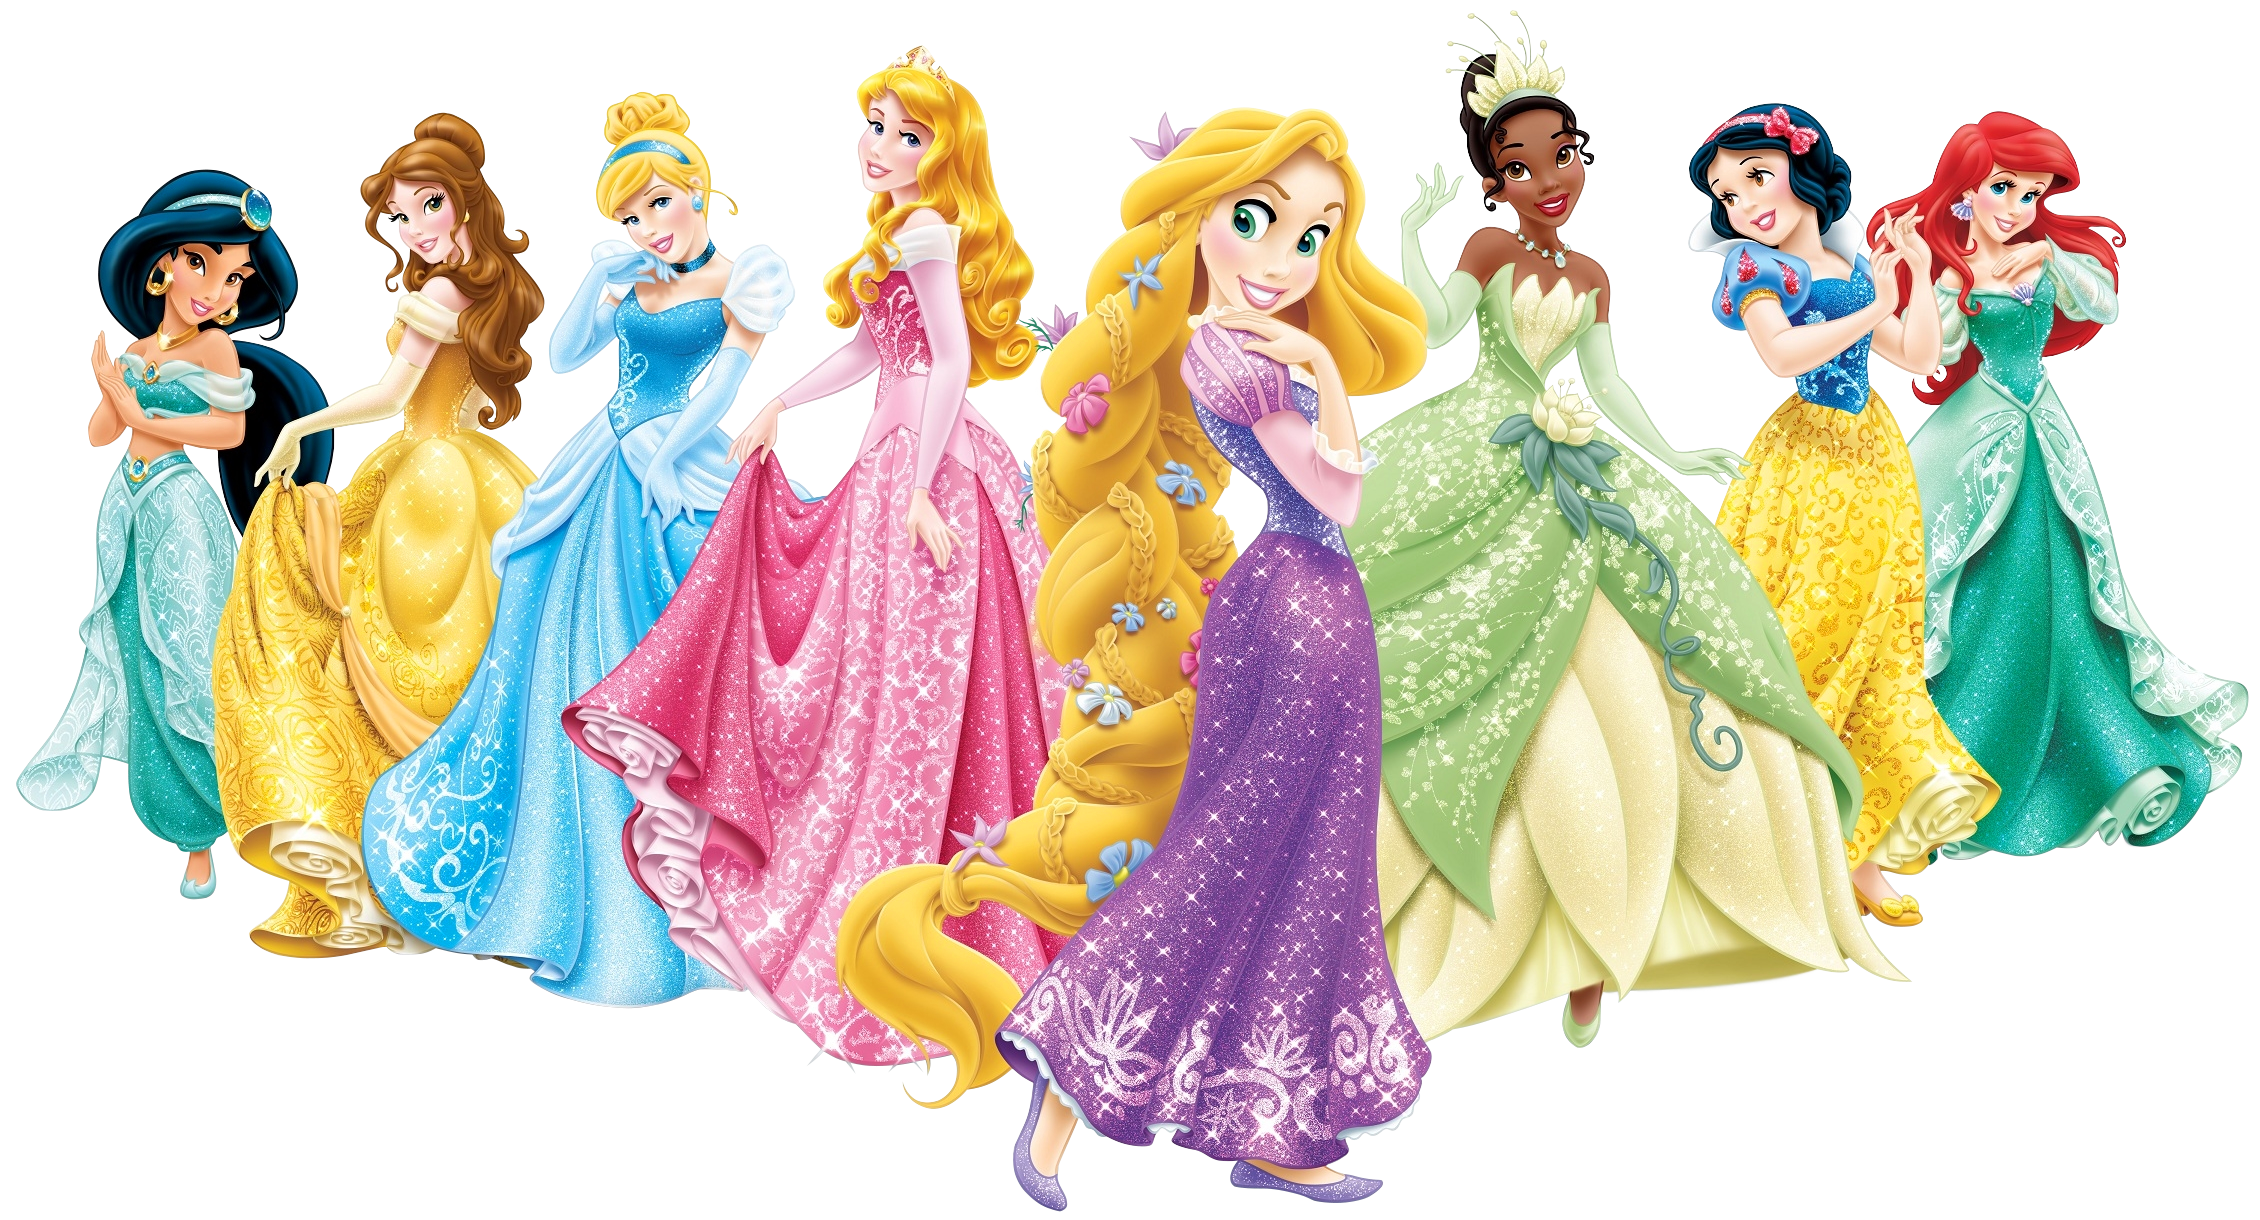 Disney Princesses PNG Cartoon Image.